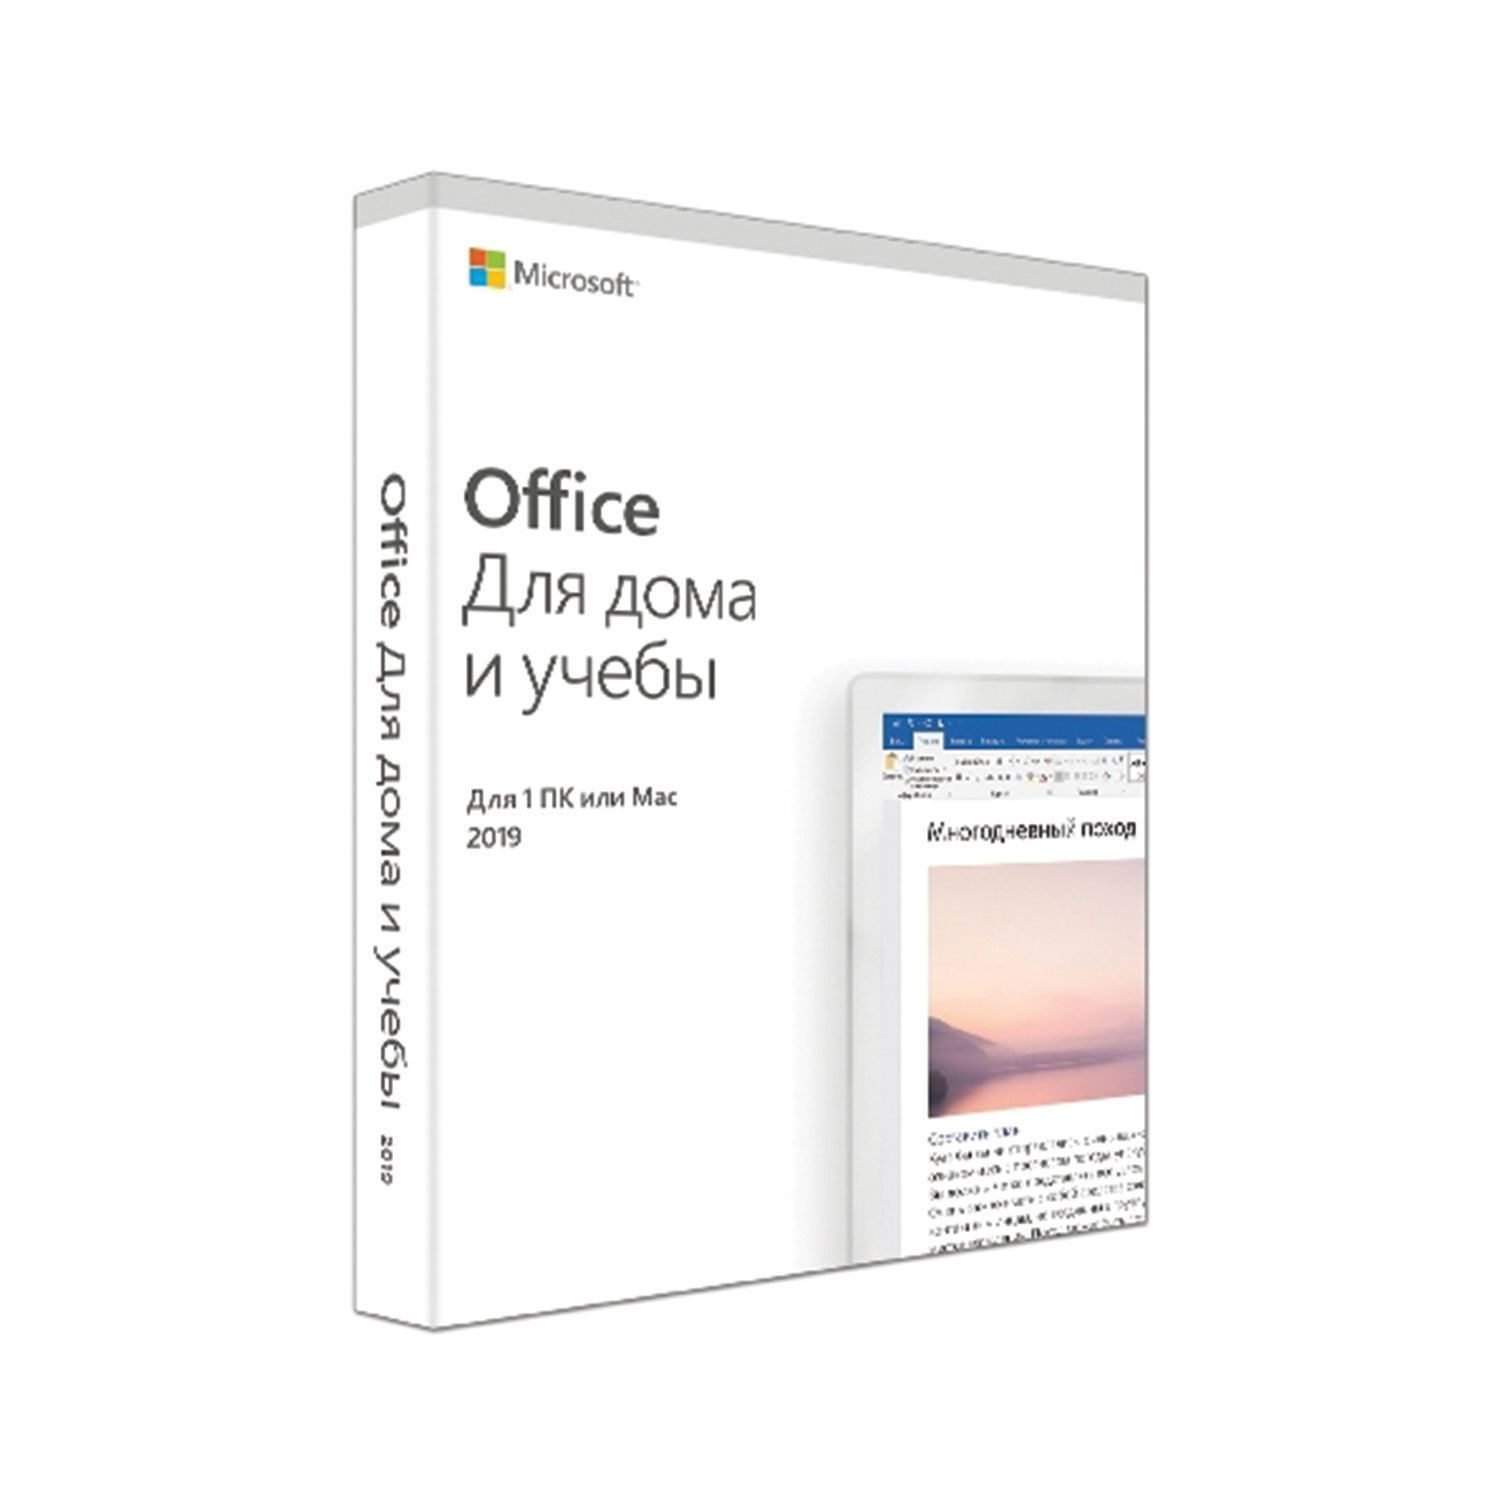 MICROSOFT / Office 2019 Home & Student software, dongle for 1 PC Windows 10 or Mac